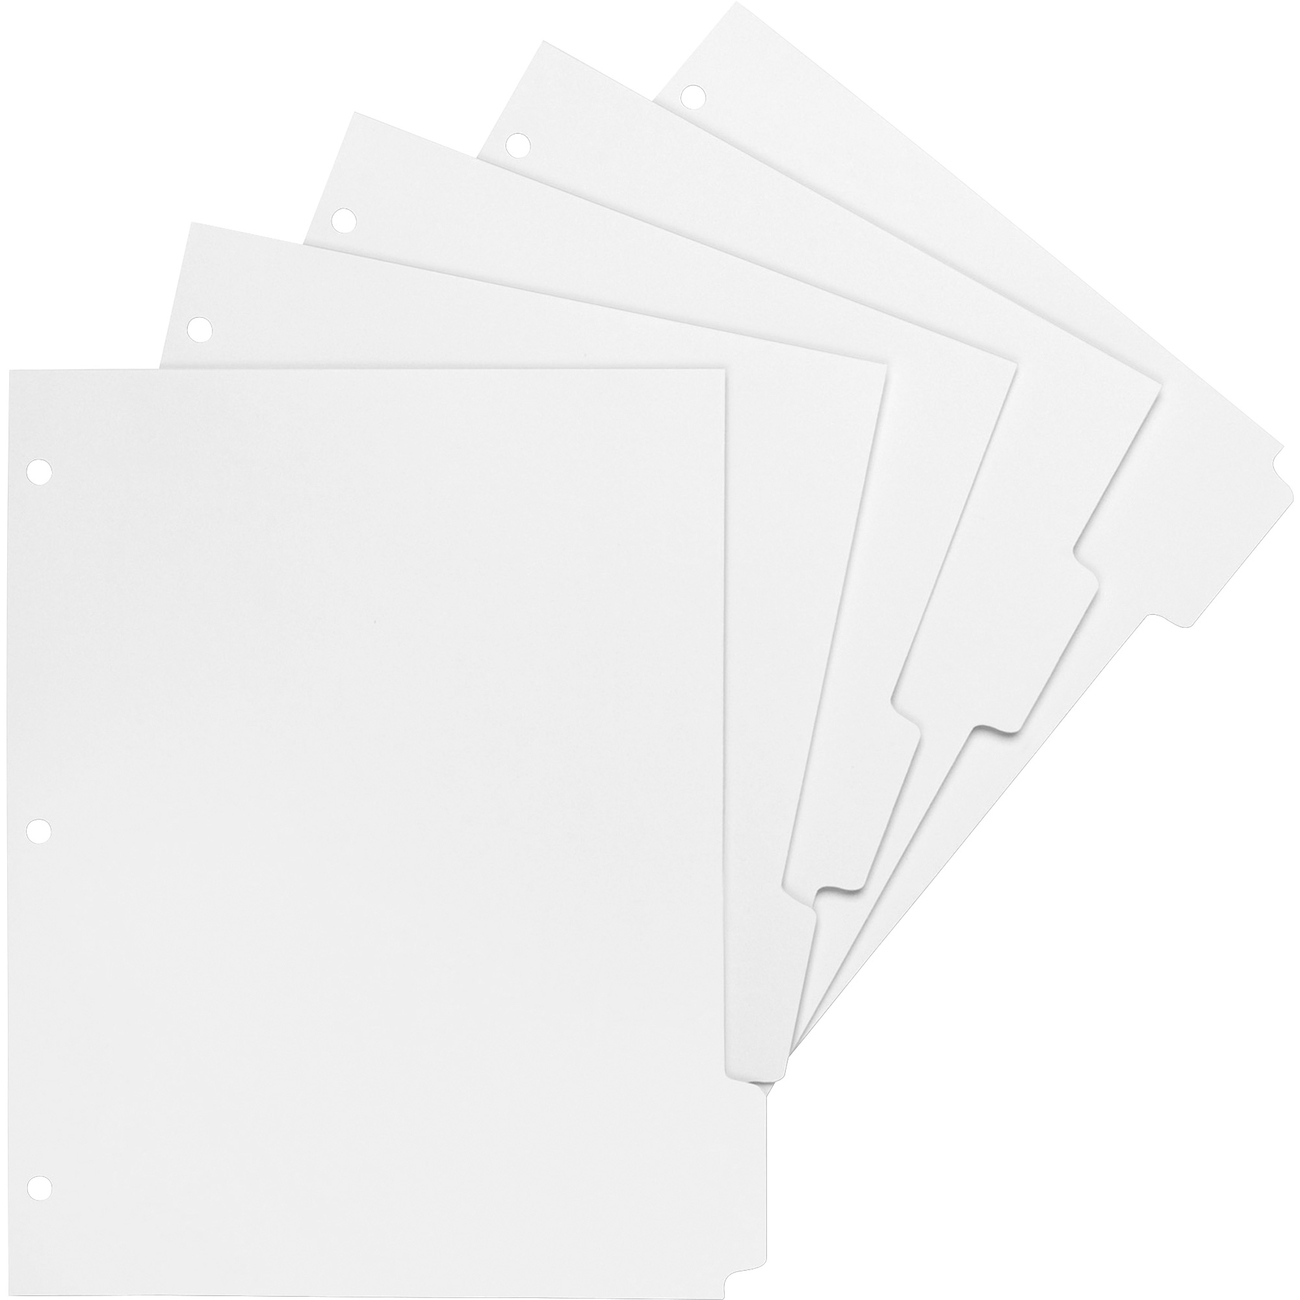 Paper dividers